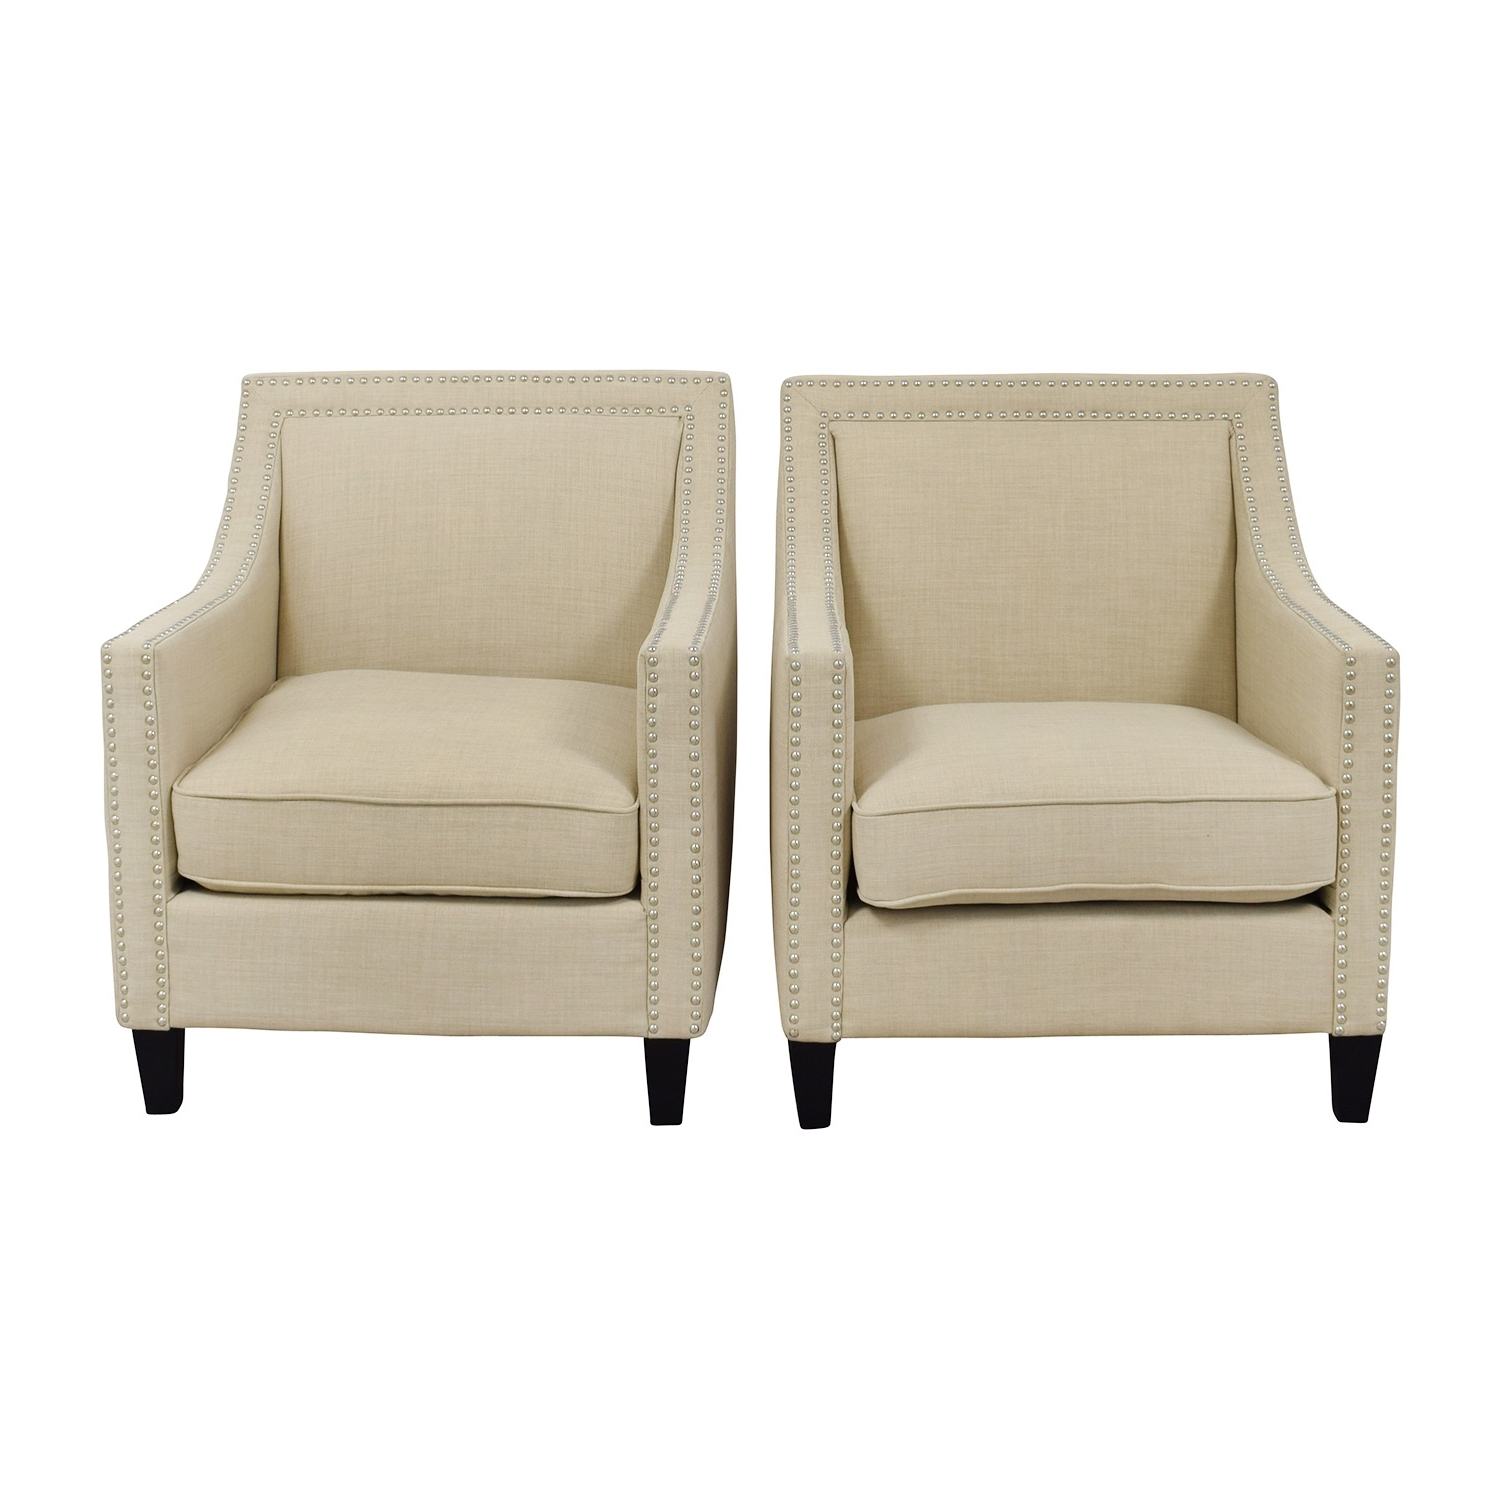 [%67% Off – Studded Beige Sofa Arm Chairs / Chairs Within Current Sofa Arm Chairs|Sofa Arm Chairs With Trendy 67% Off – Studded Beige Sofa Arm Chairs / Chairs|Most Current Sofa Arm Chairs Inside 67% Off – Studded Beige Sofa Arm Chairs / Chairs|Recent 67% Off – Studded Beige Sofa Arm Chairs / Chairs For Sofa Arm Chairs%] (View 1 of 20)